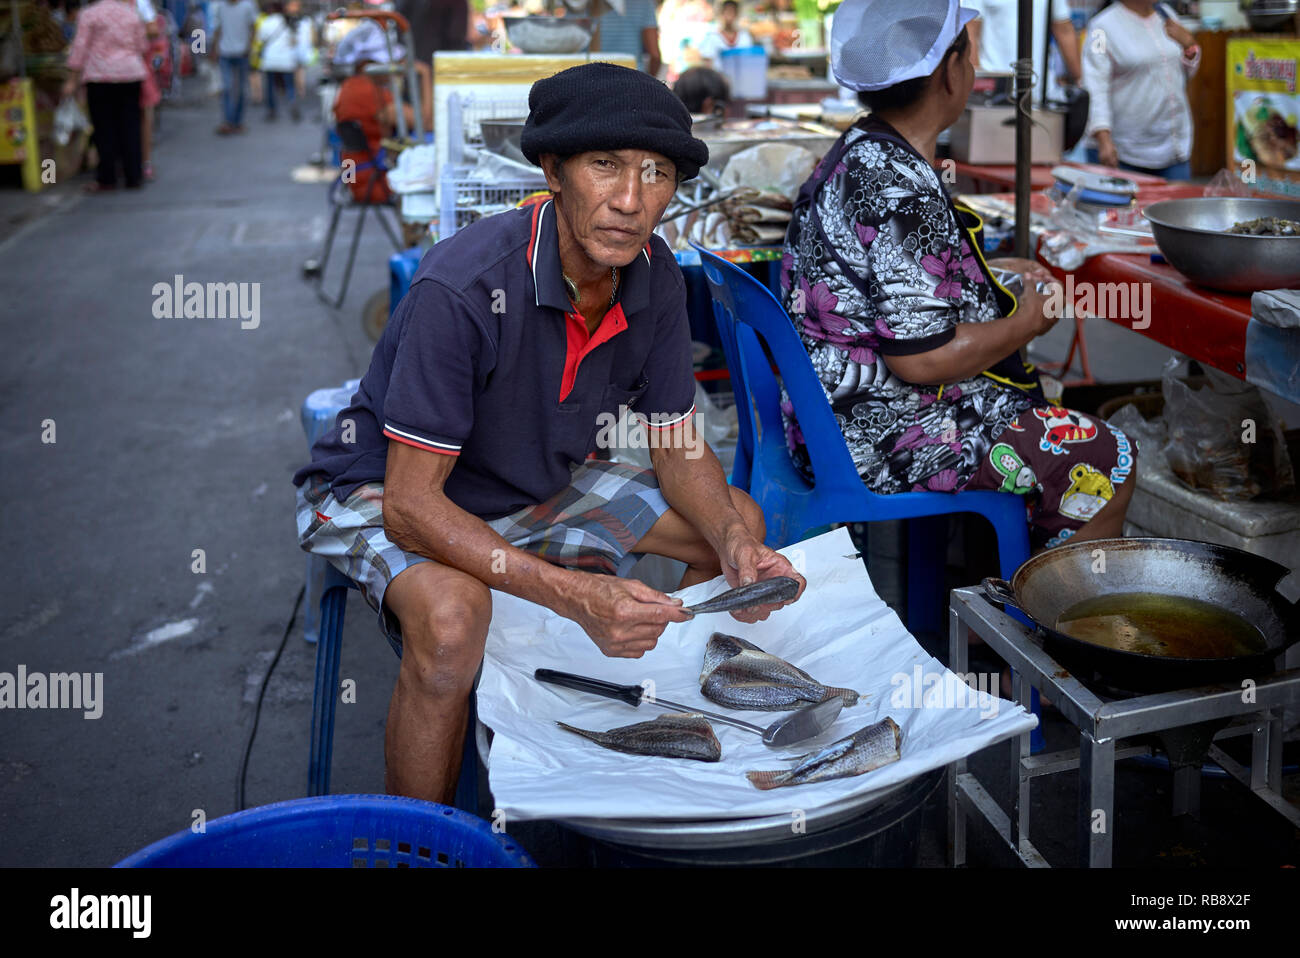 Thailand street food market vendor preparing fish for sale. Southeast Asia - Stock Image